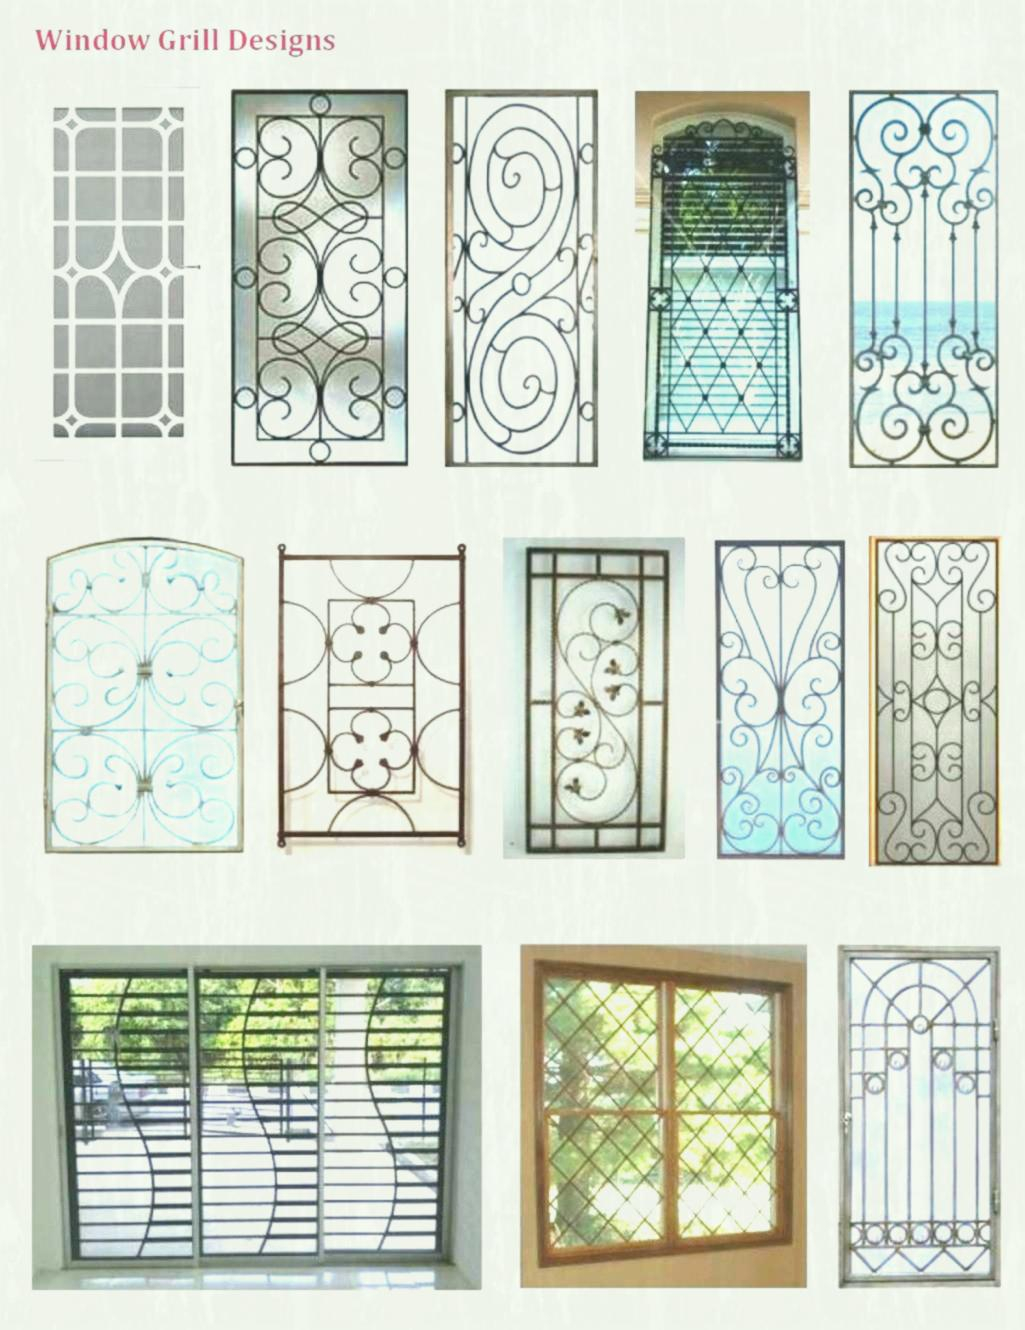 Lovely Custom Made Iron Doors And Window Covers Work Door Artistic Cover in Sri Lanka Window Grill Designs